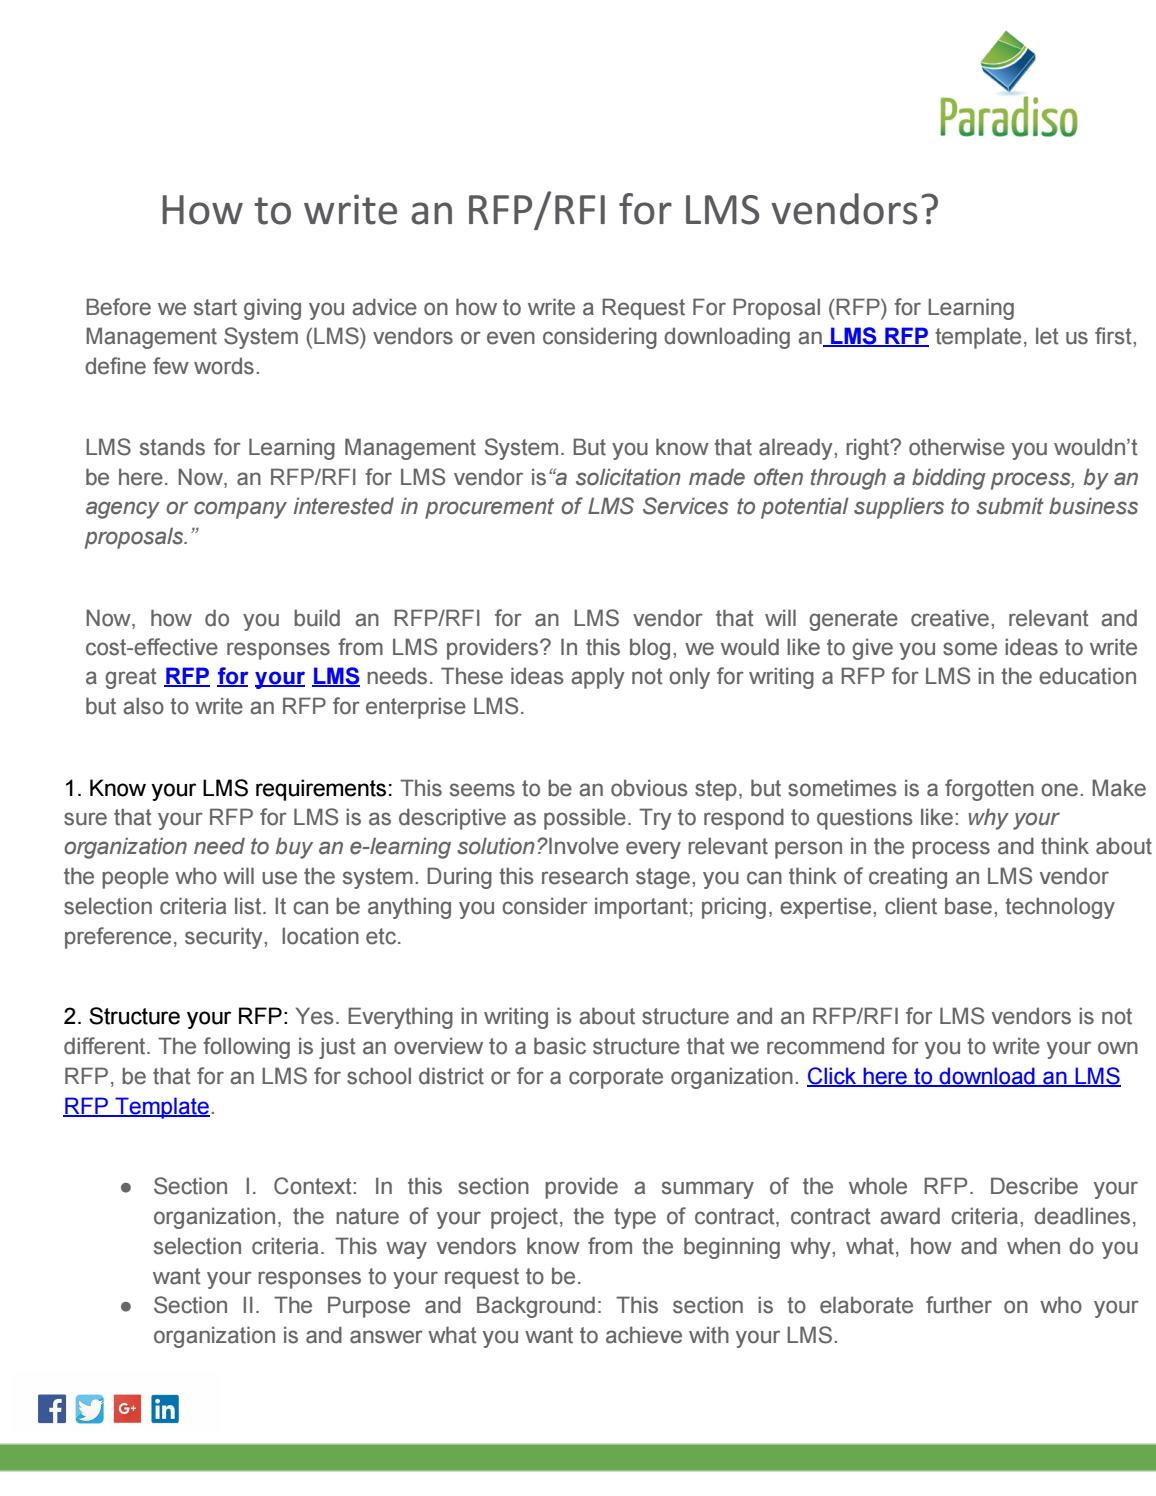 Lms Rfp By Akrati Srivastava Issuu